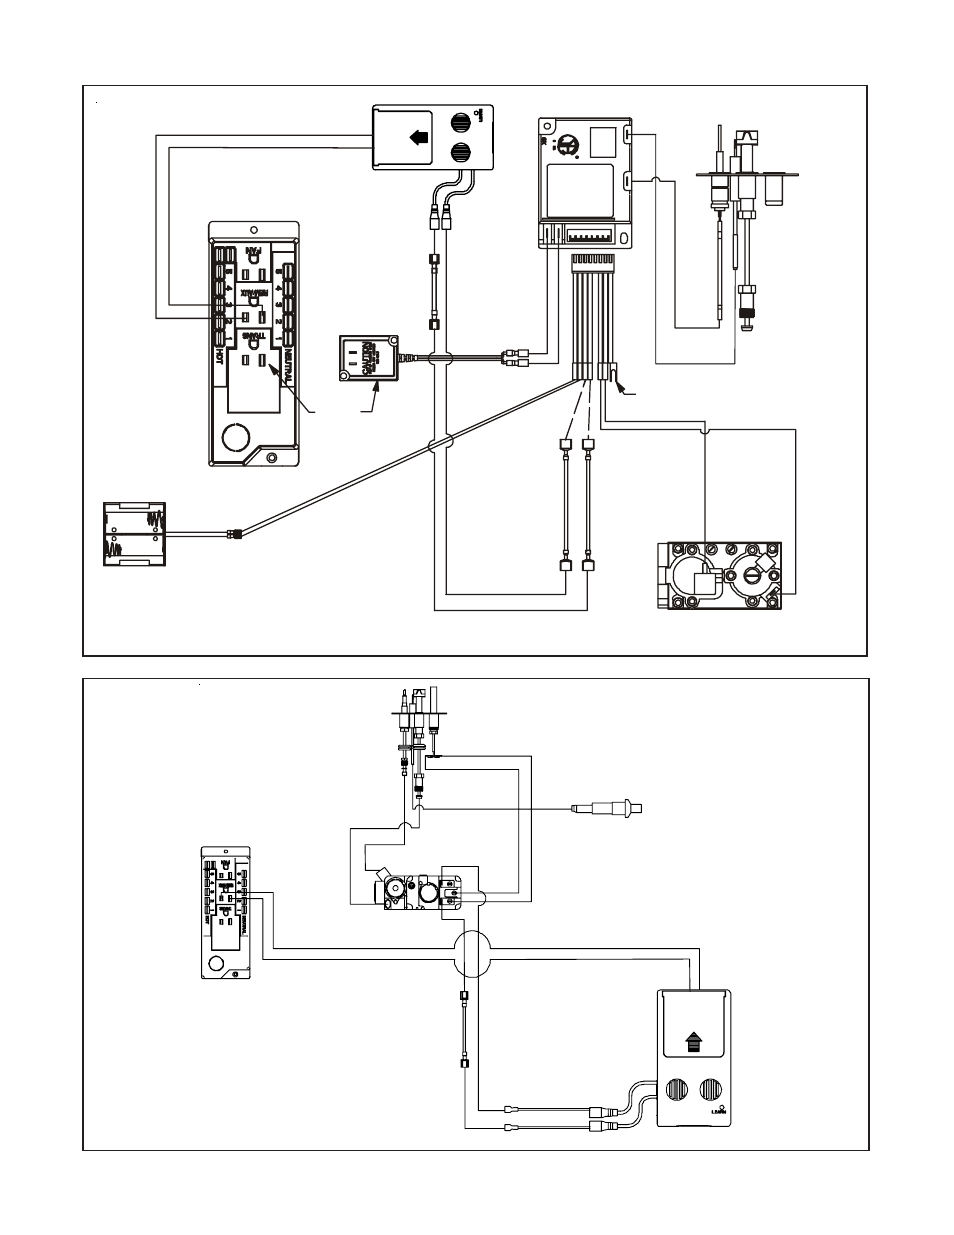 Remote control    wiring    diagrams   Hearth and Home